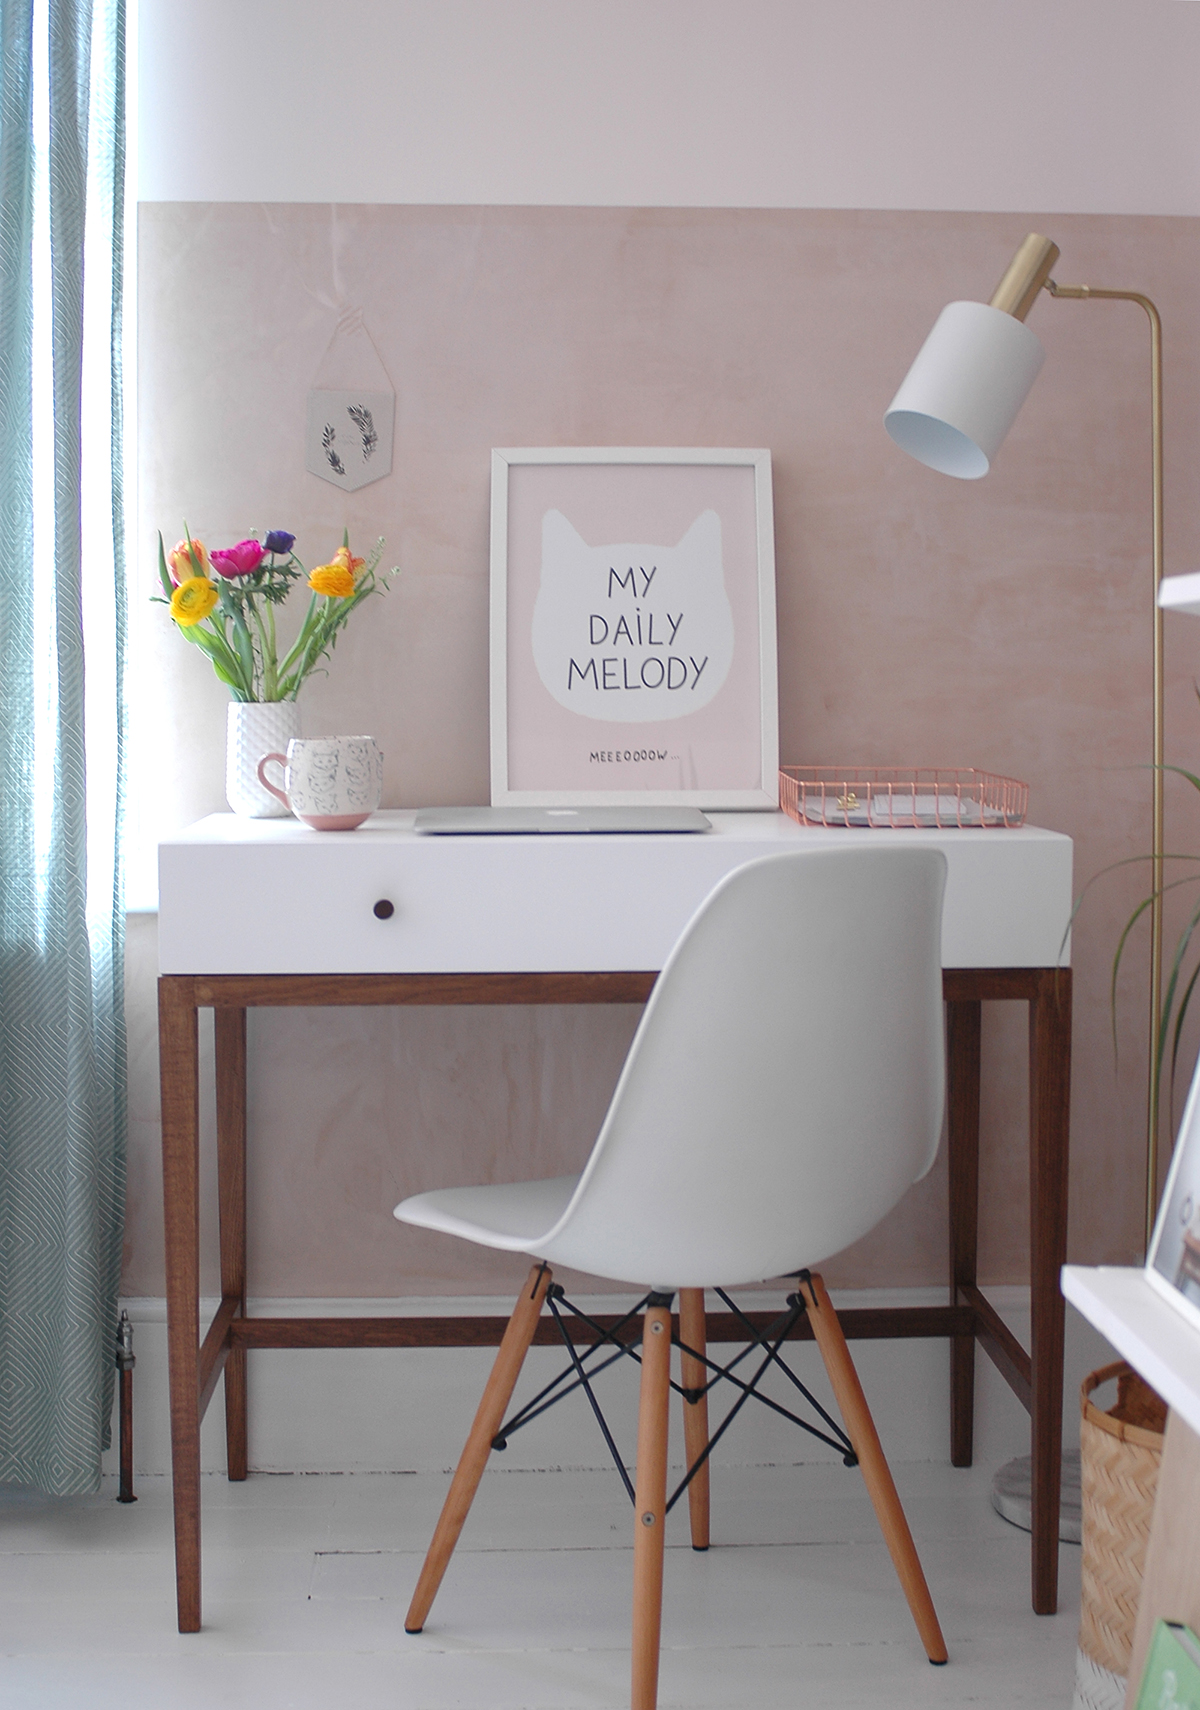 Desk : Habitat /  Chair : Voga /  Floor lamp : Barker and Stonehouse /  My Daily Melody print : Audrey Jeanne